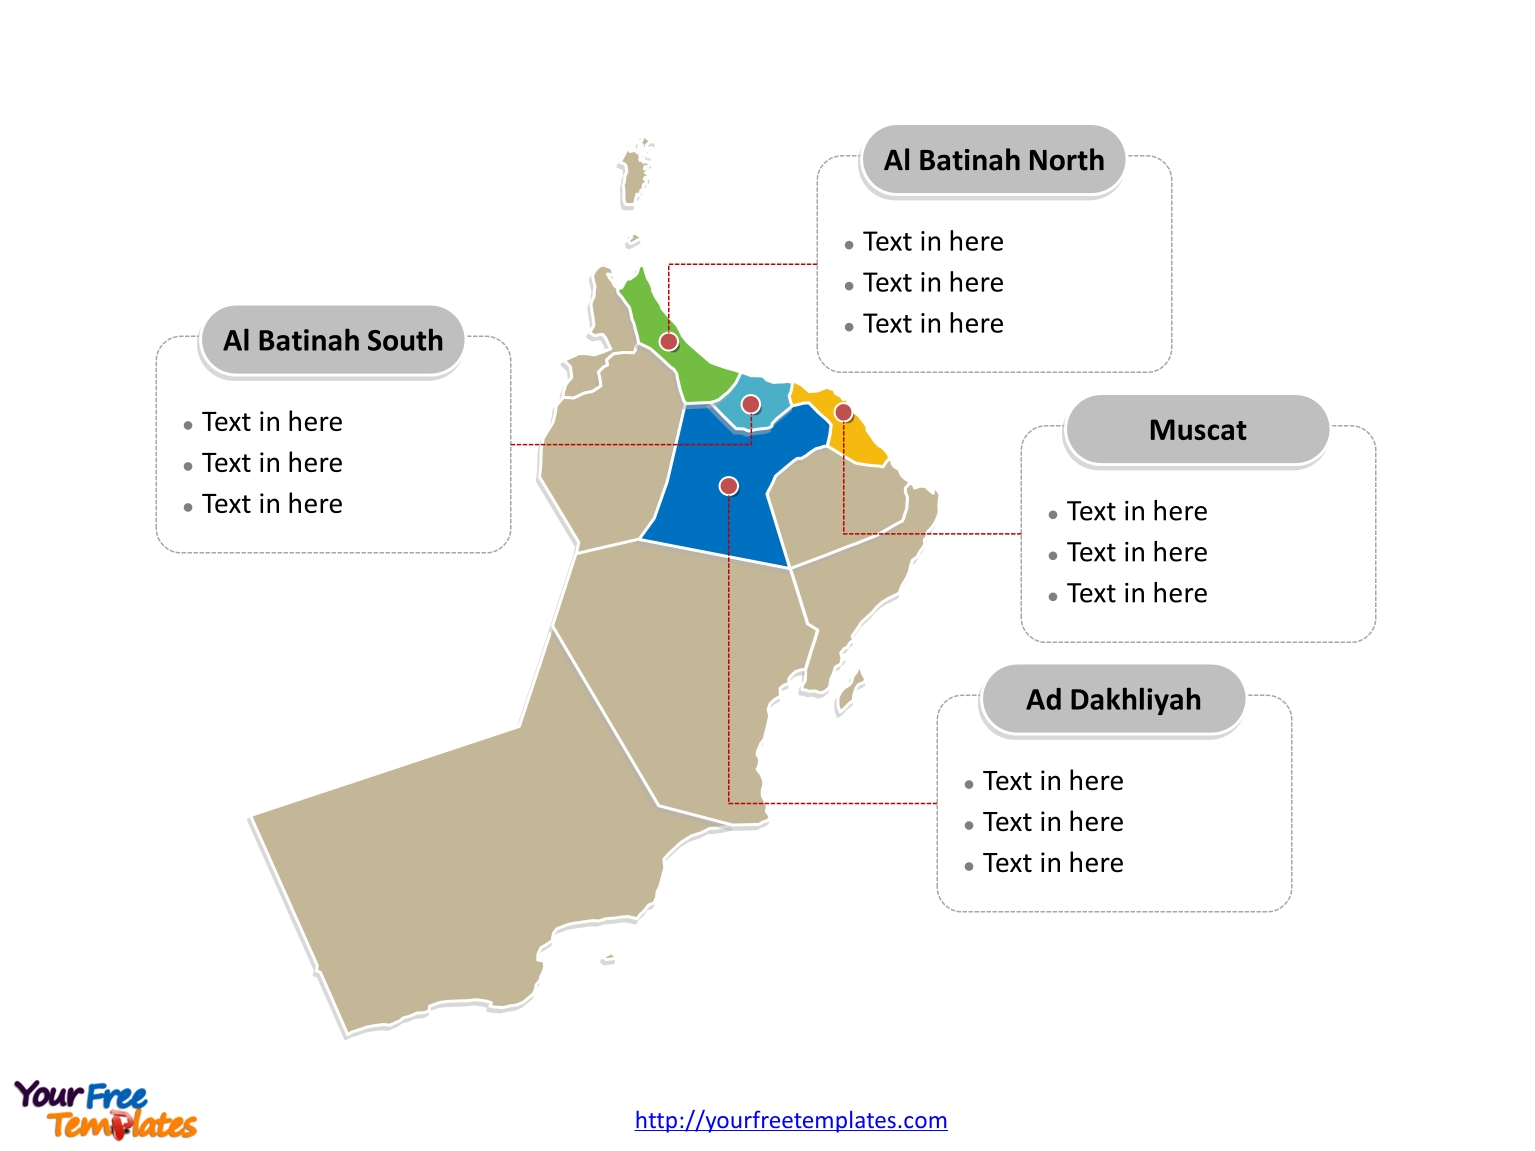 Immediately Free Download Editable Oman Outline And Political Map In Editable Format No Registration Needed Map Political Map Map Outline